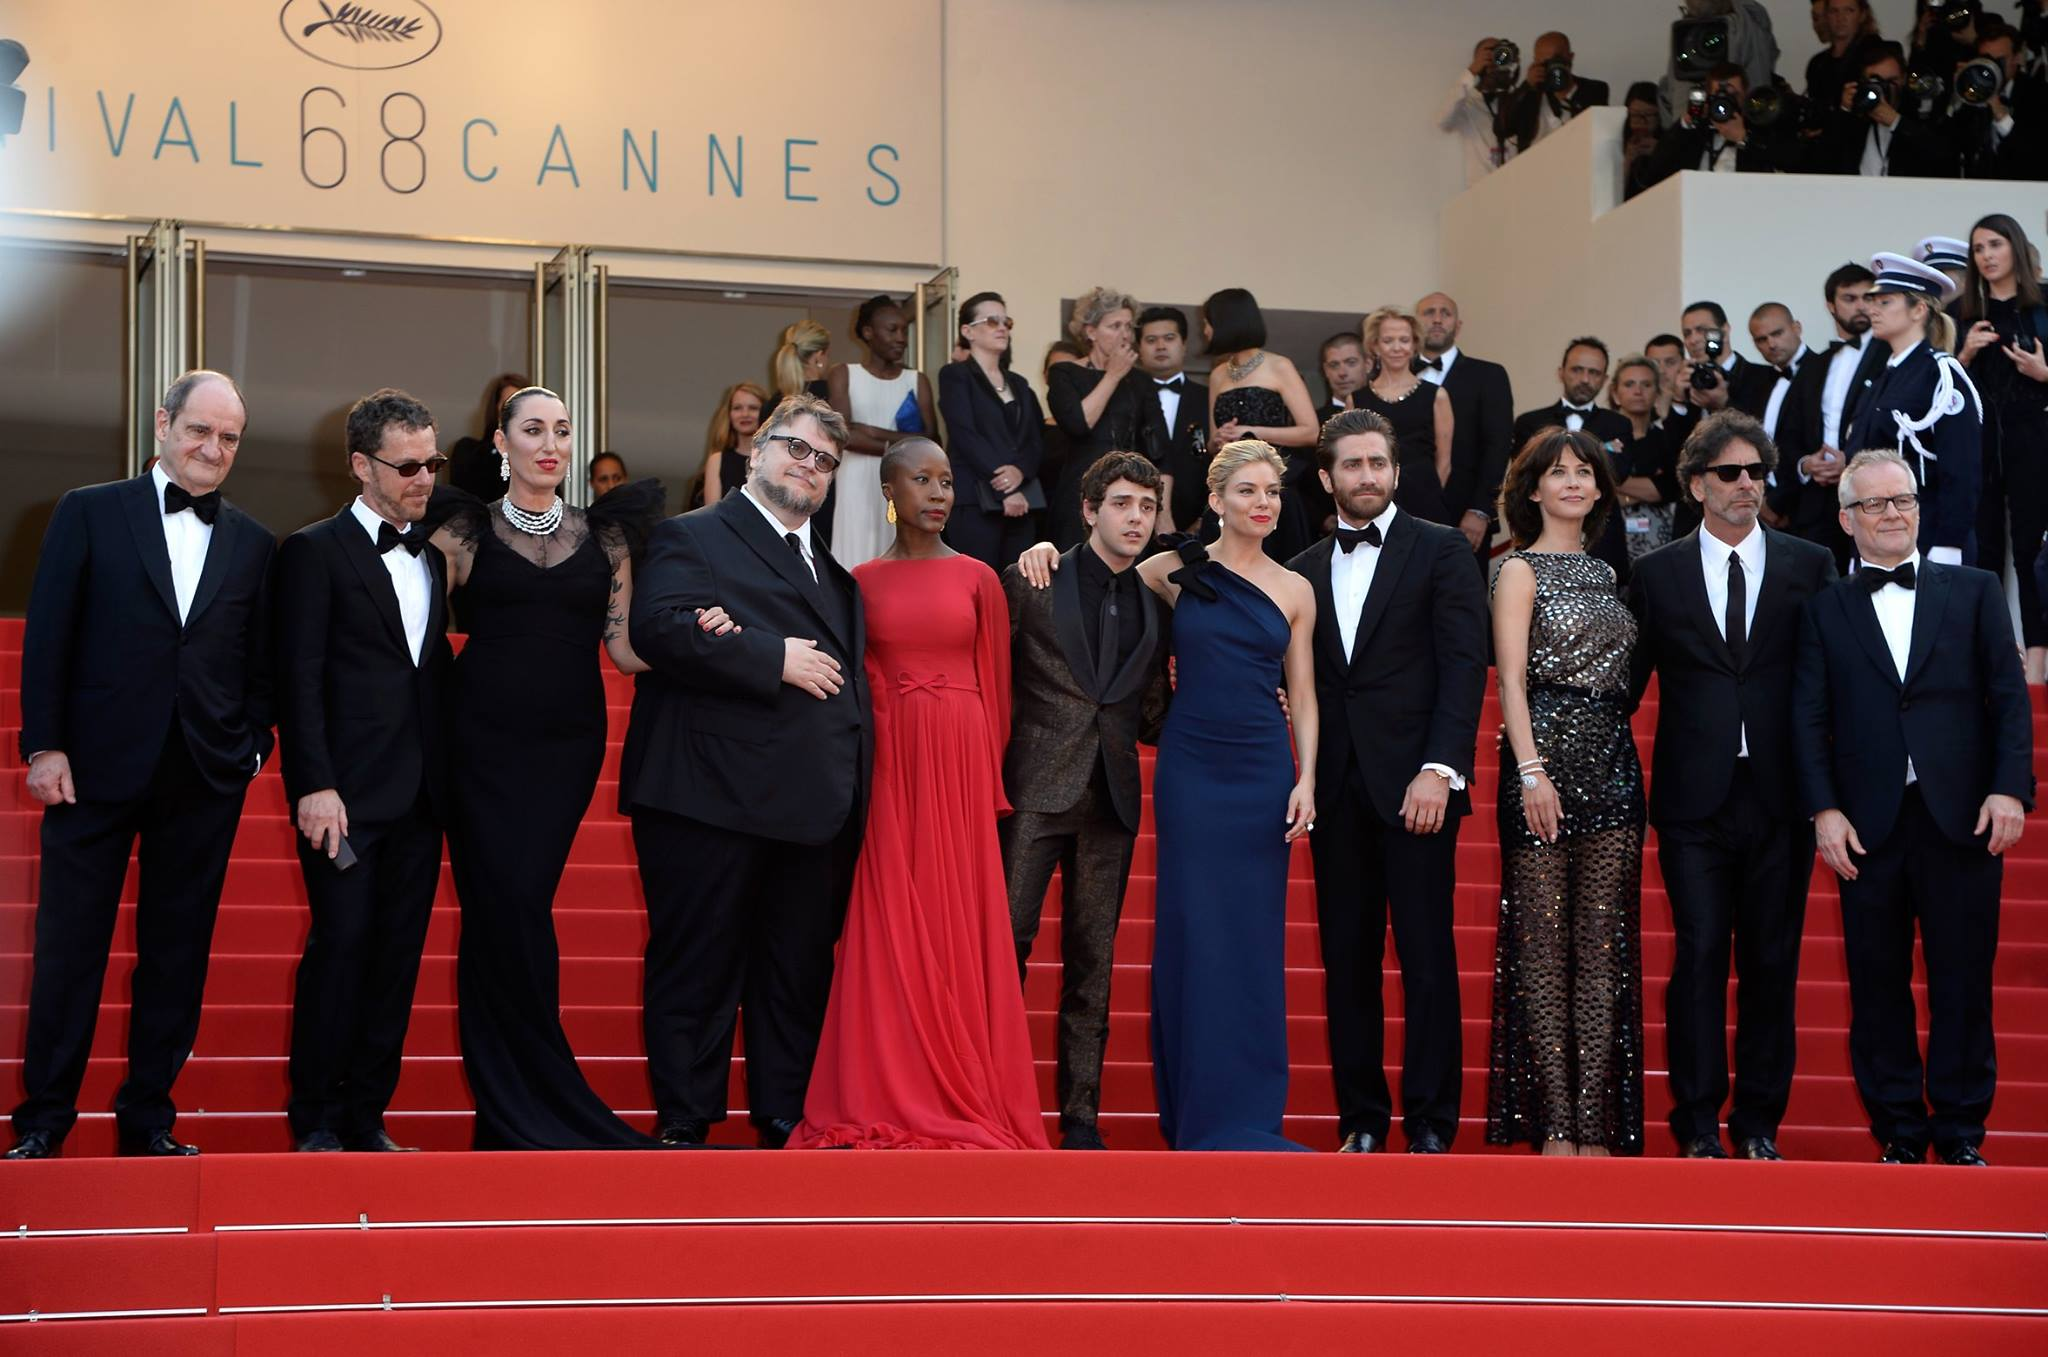 The jury for the 68th Cannes Film Festival 2015